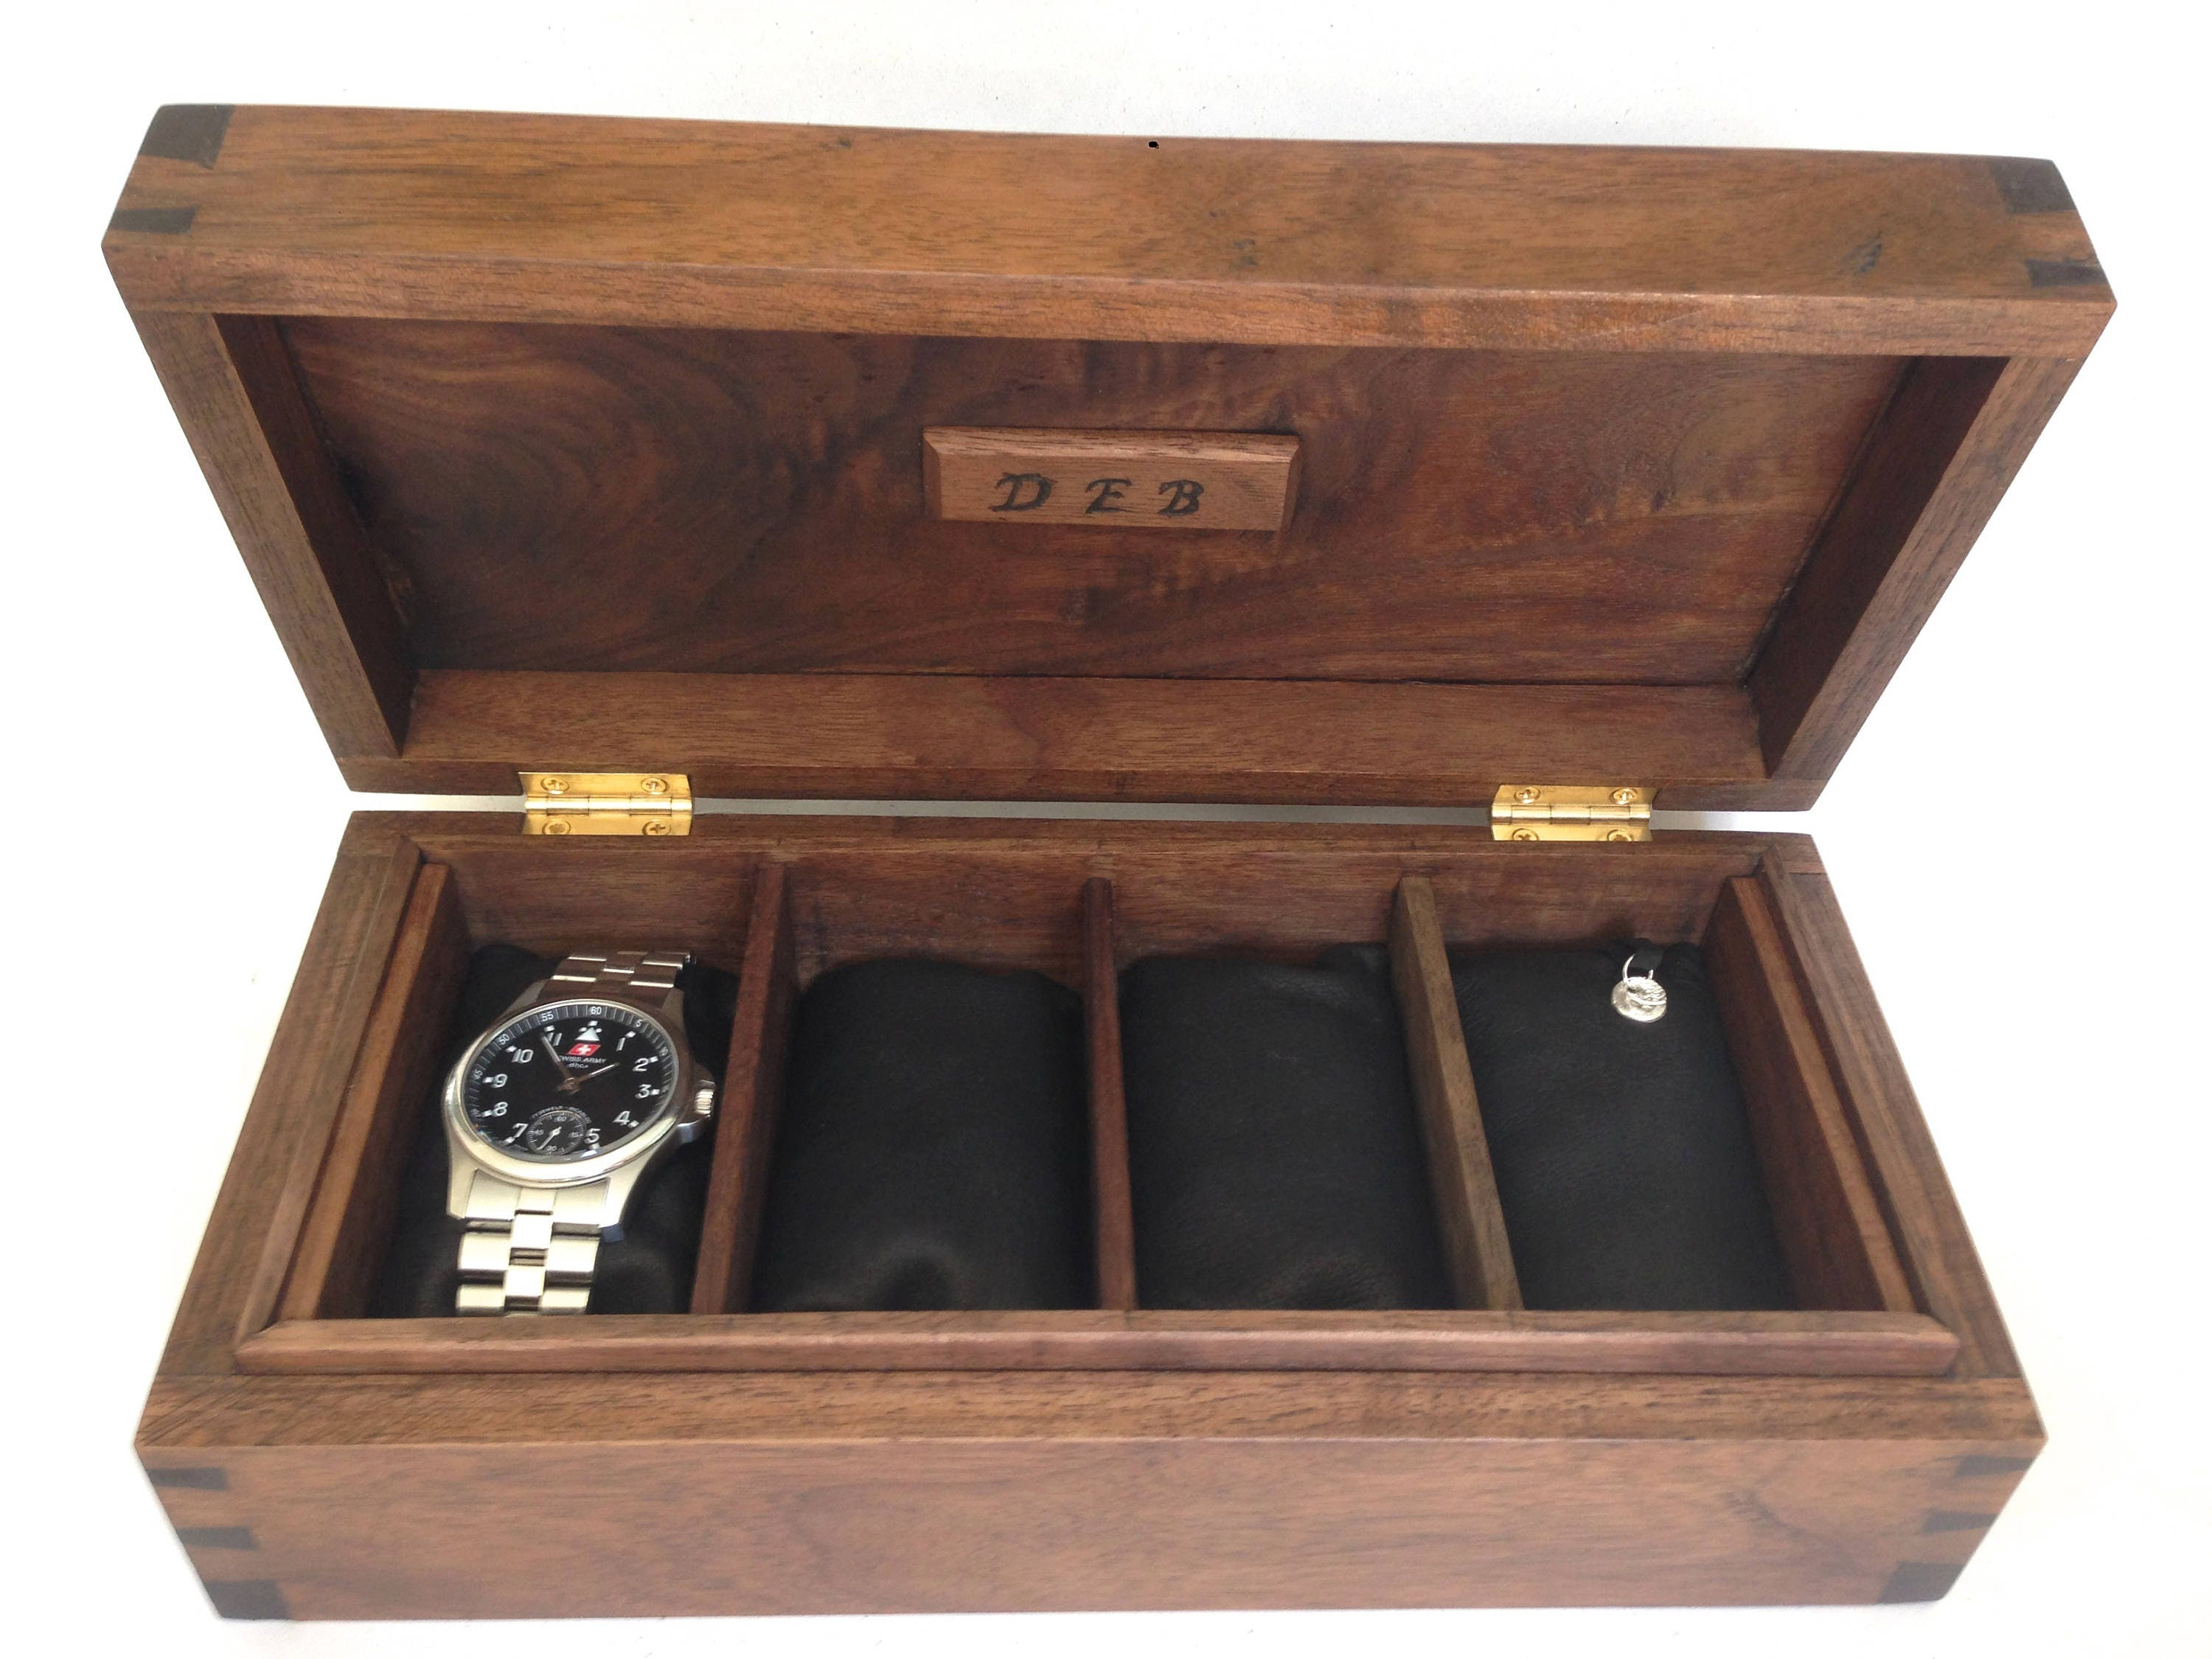 Digby A fine wooden box handmade in walnut contemporary. Watch box with leather pillows can be customised in wood and interior.